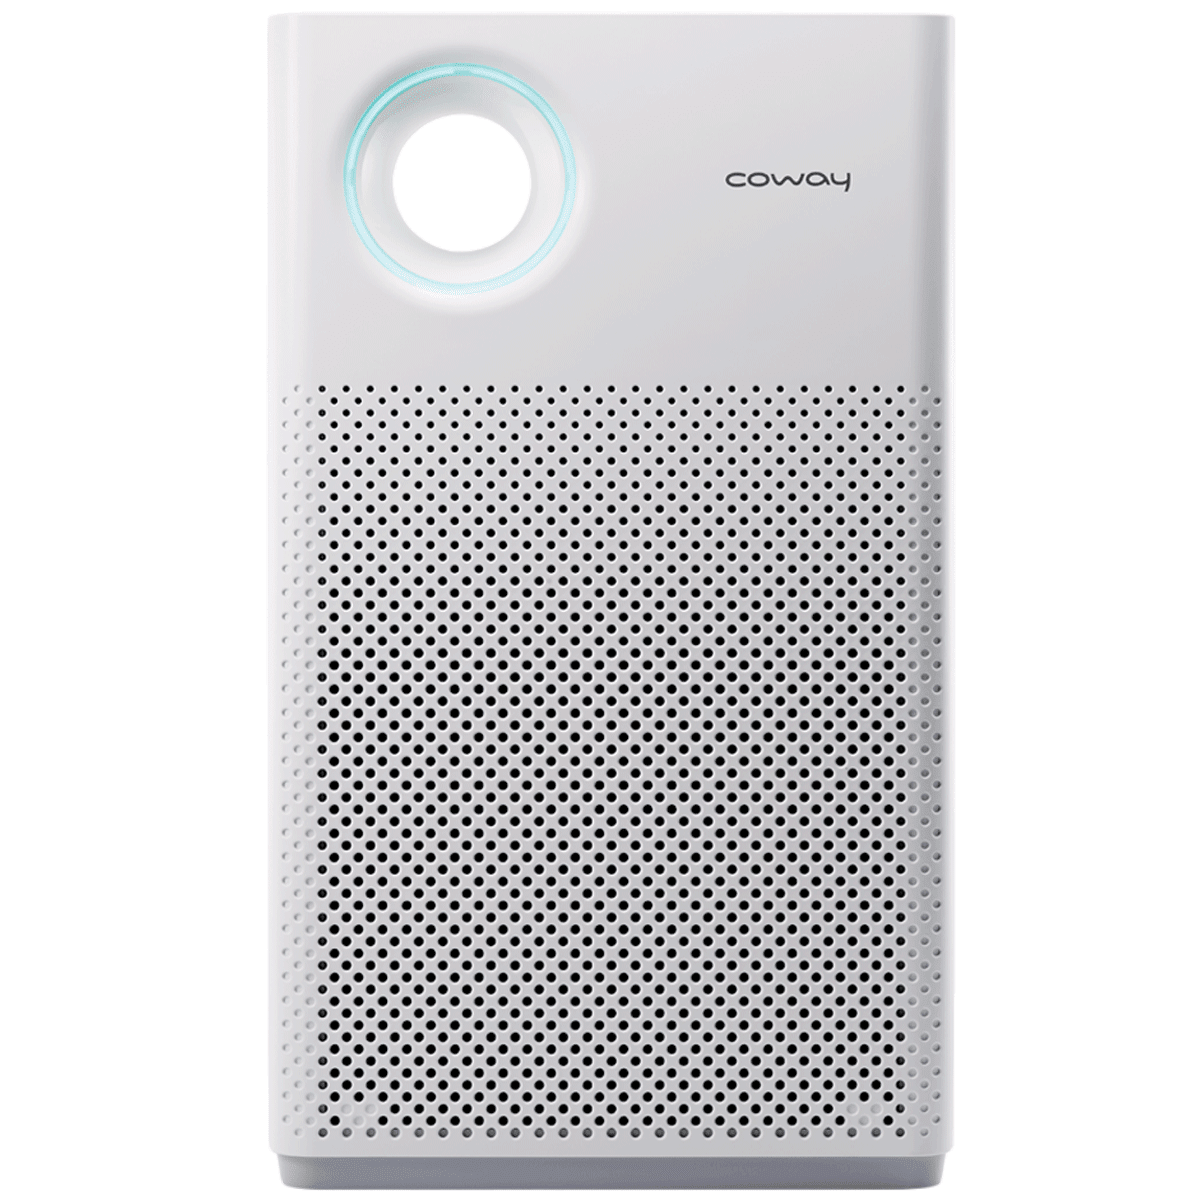 Coway HEPA Filter Technology Air Purifier (Washable Pre-Filter, AirMega 200, White)